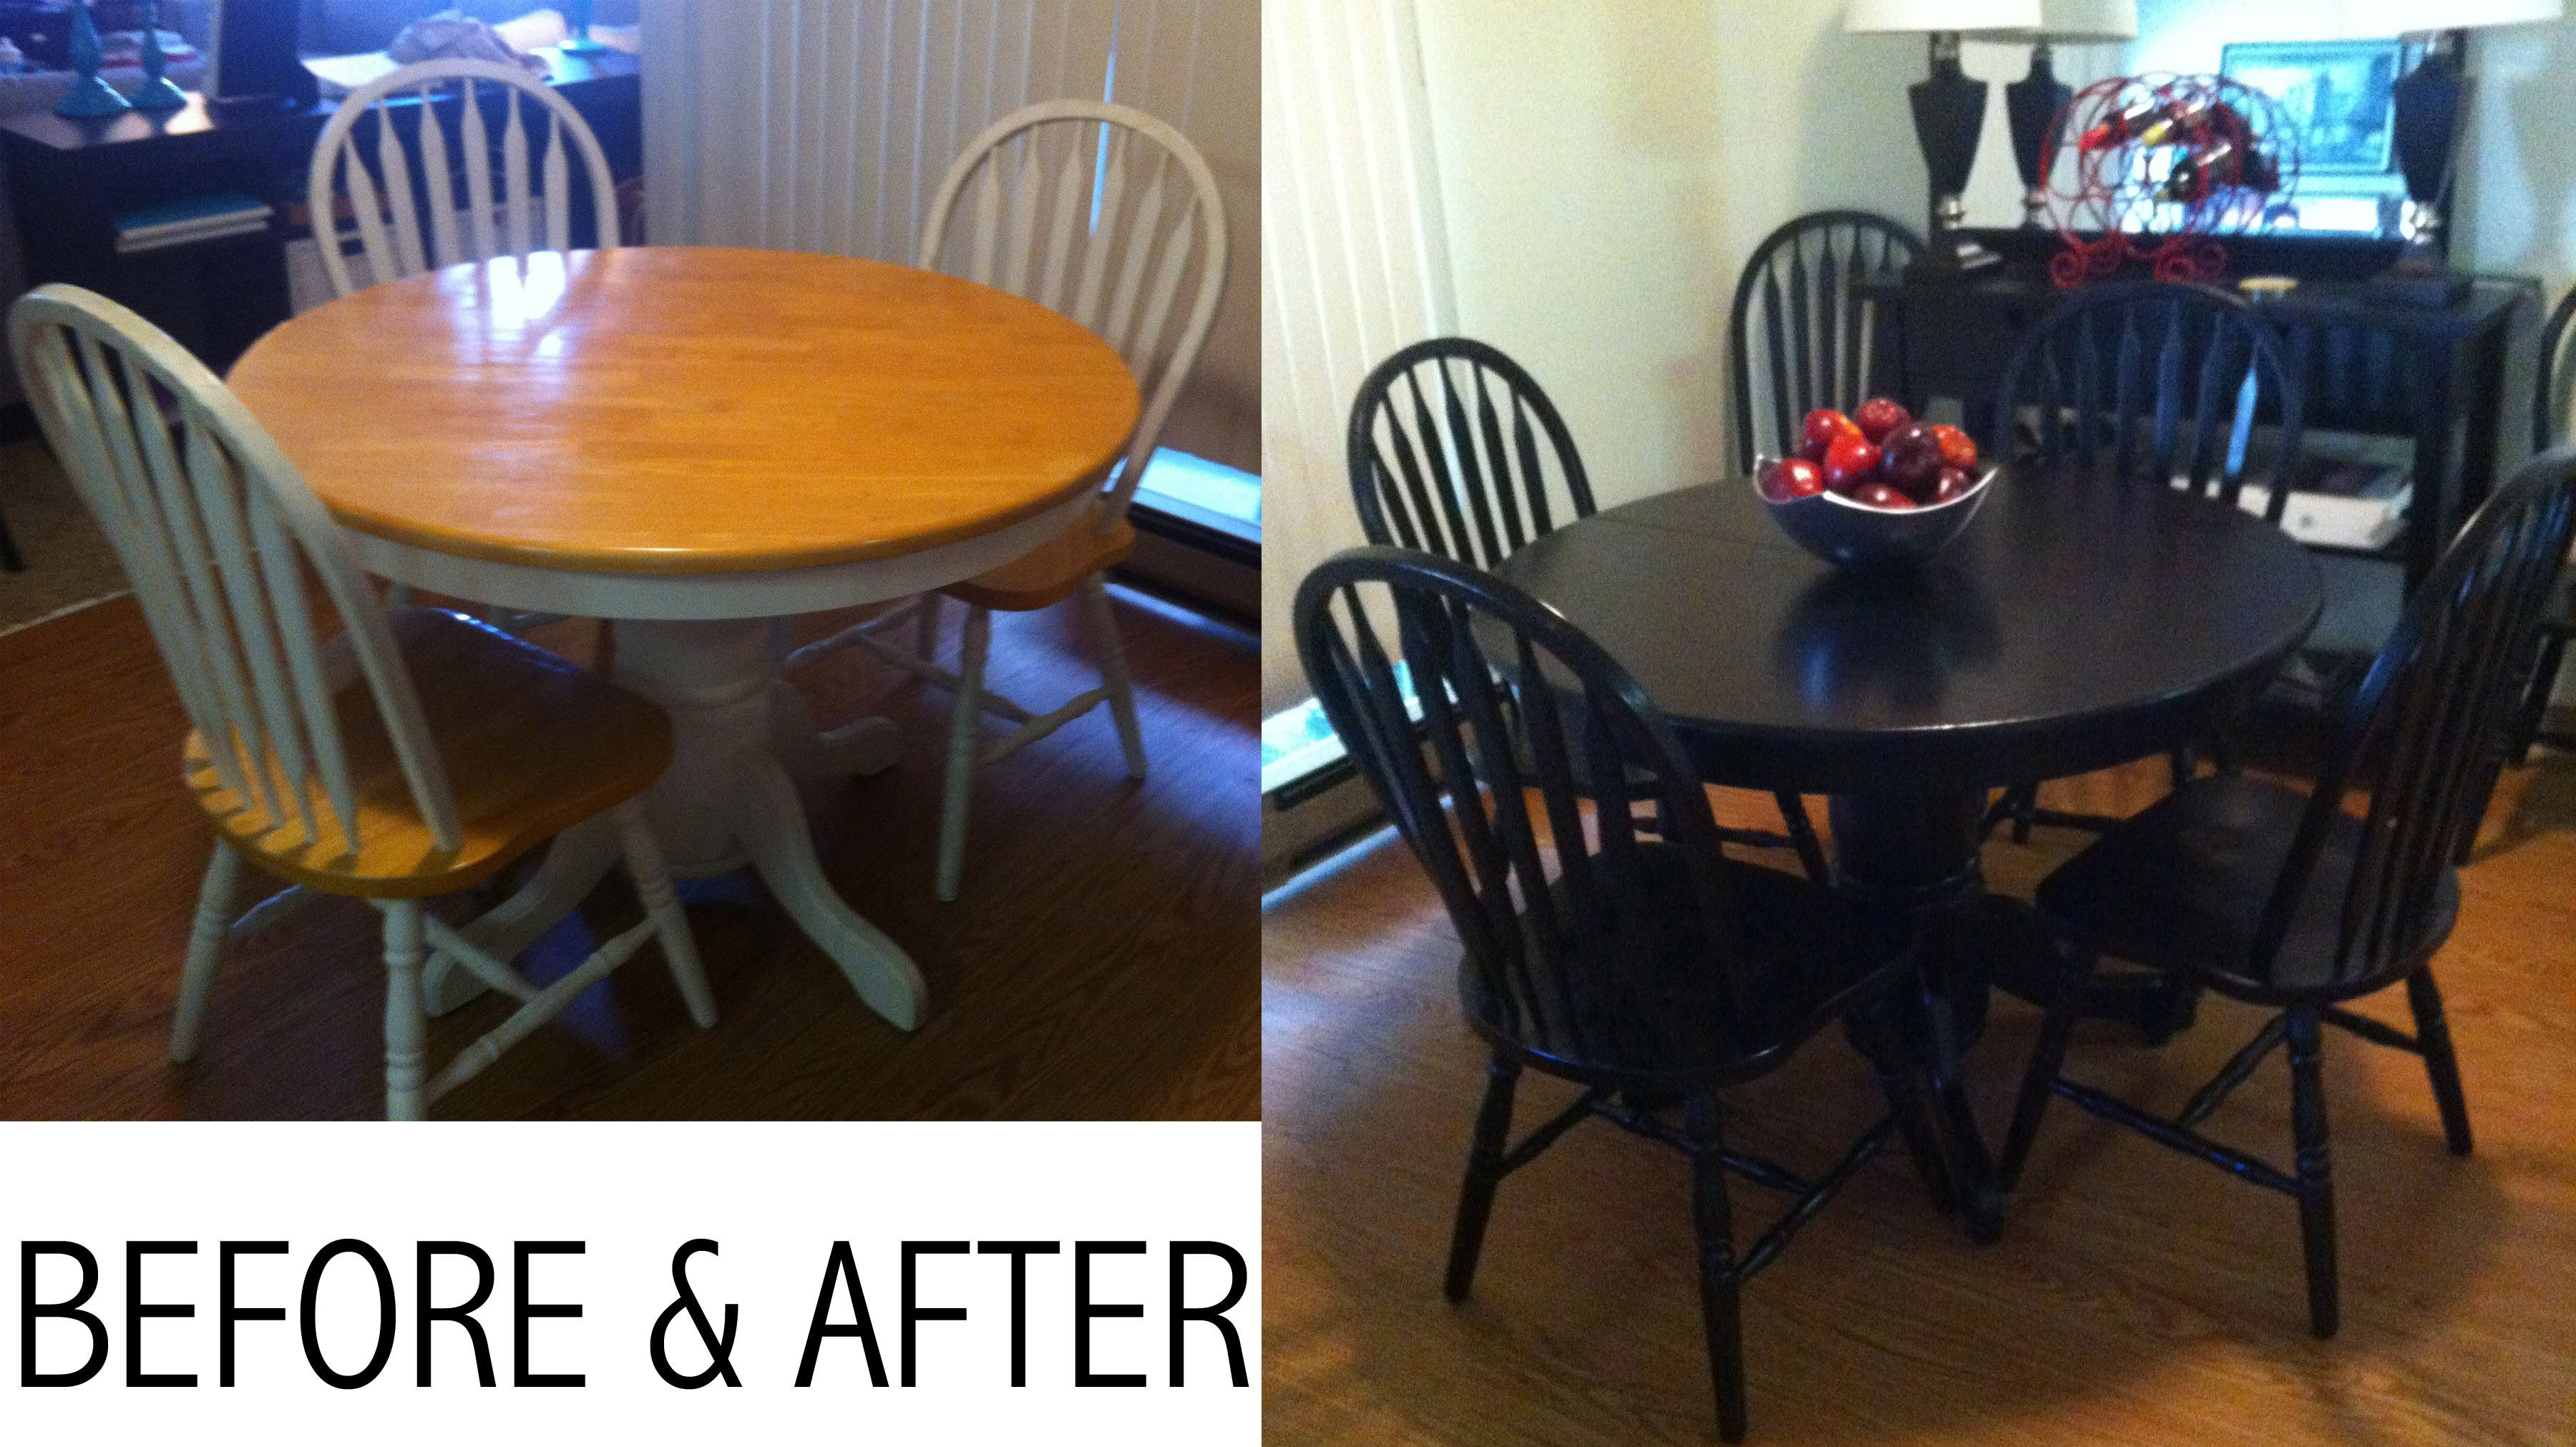 Diy Paint Job On My Dining Room Table No Sanding Required 1 Zinsser Bulls Eye 1 2 3 1 Gal Water Diy Kitchen Table Dining Room Table Dining Table Makeover